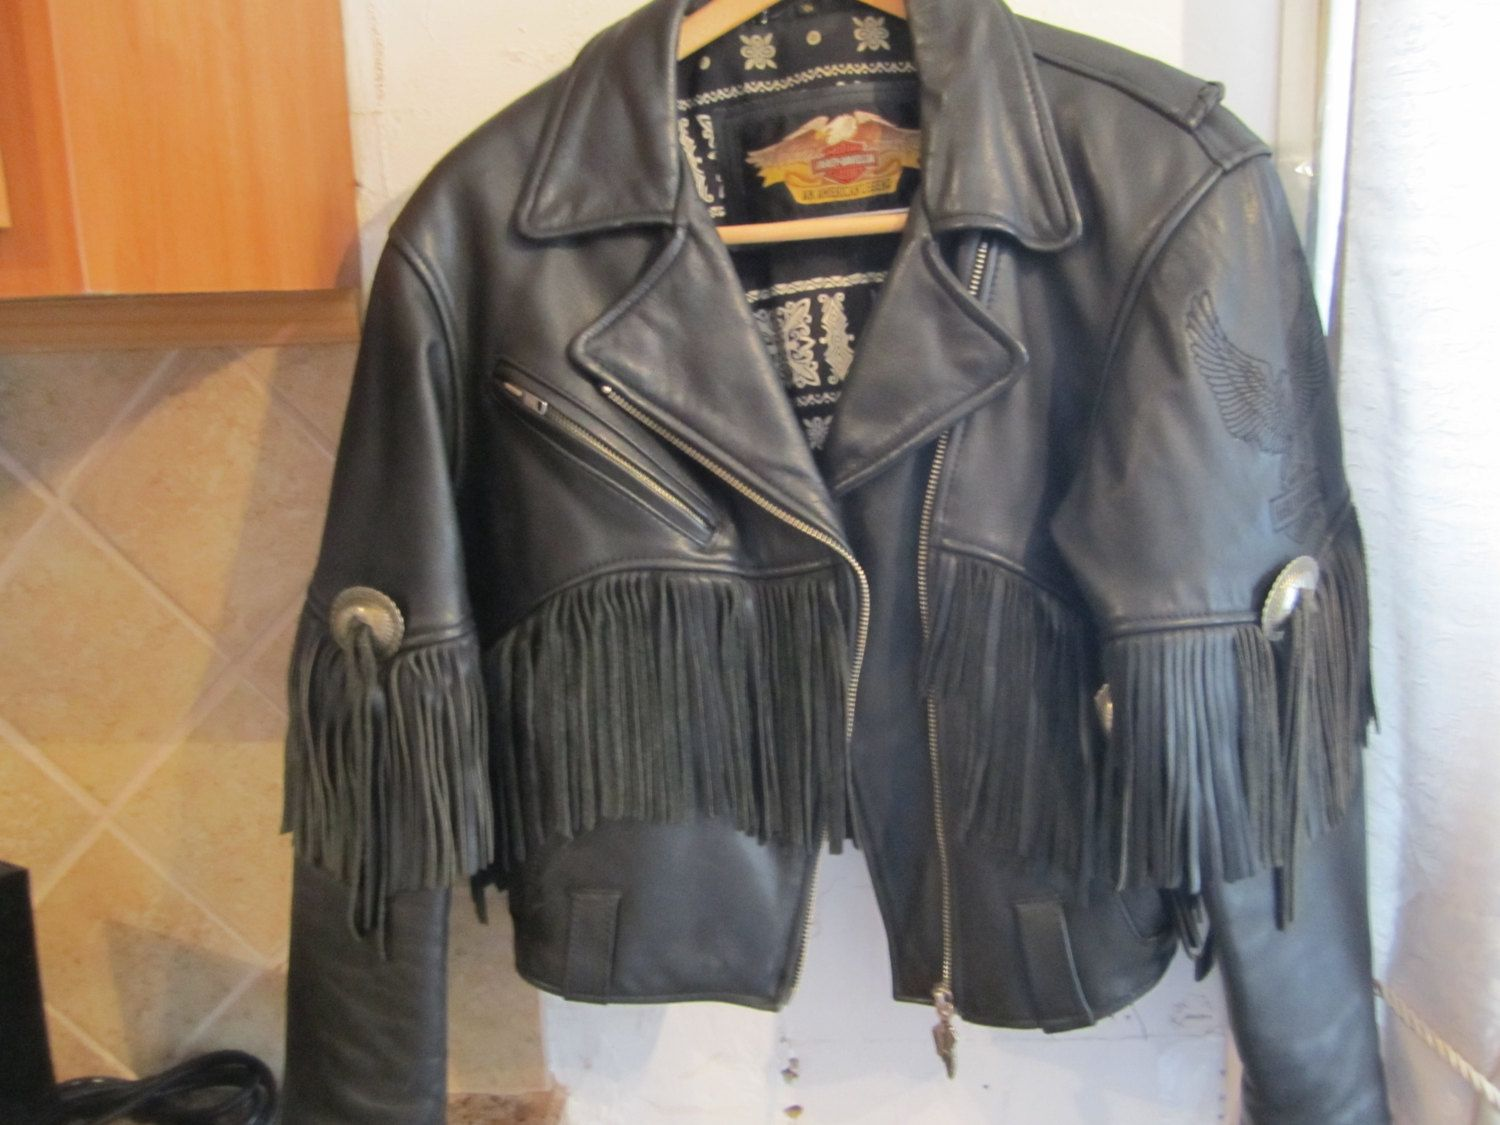 HARLEY DAVIDSON bomber jacket with embroidered logo on back, 1990's vintage biker jacket, size L